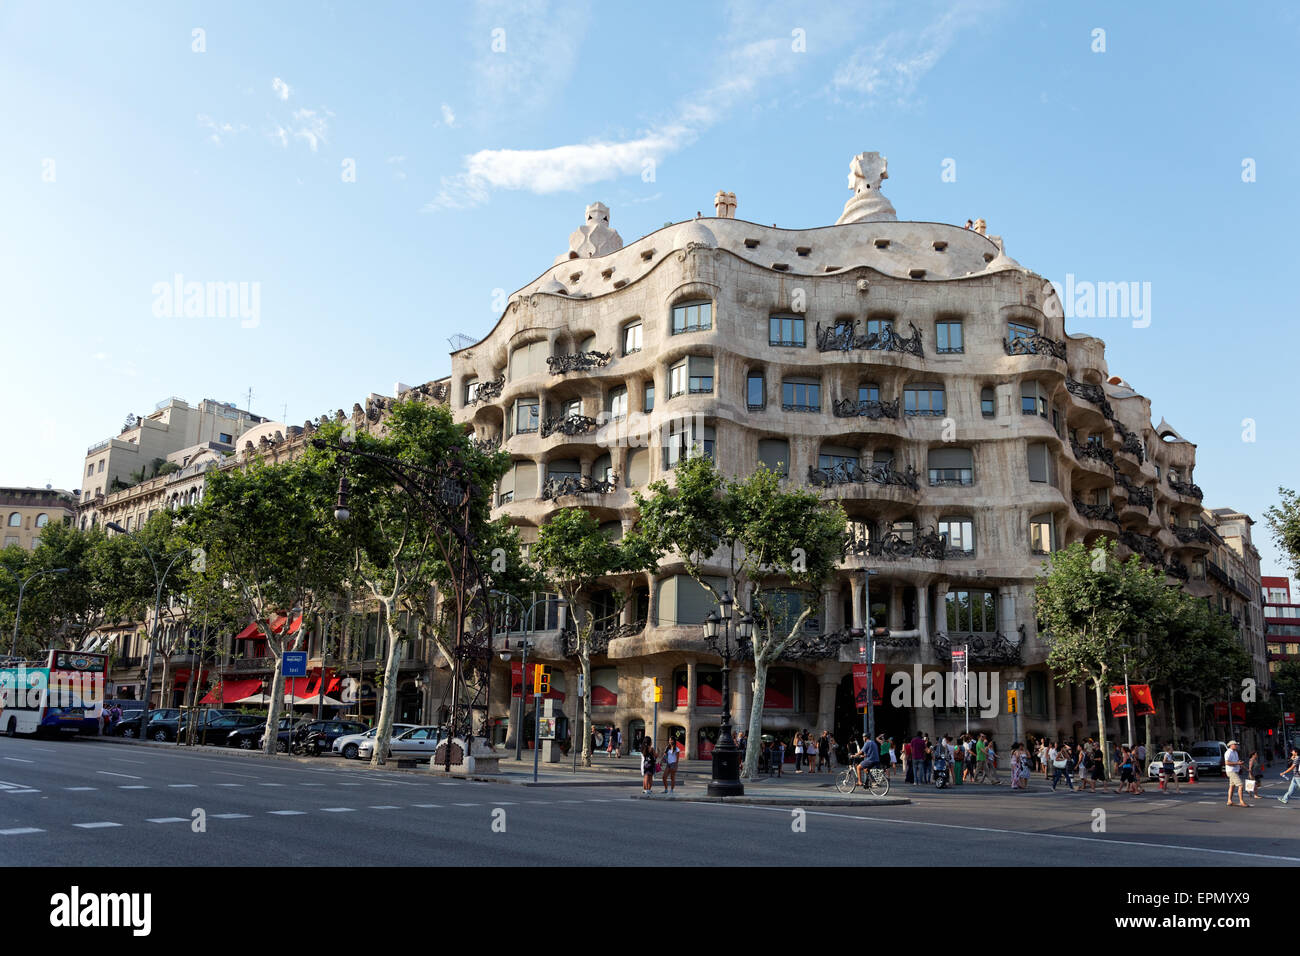 Anton gaud architect stockfotos anton gaud architect bilder alamy - Architekt barcelona ...